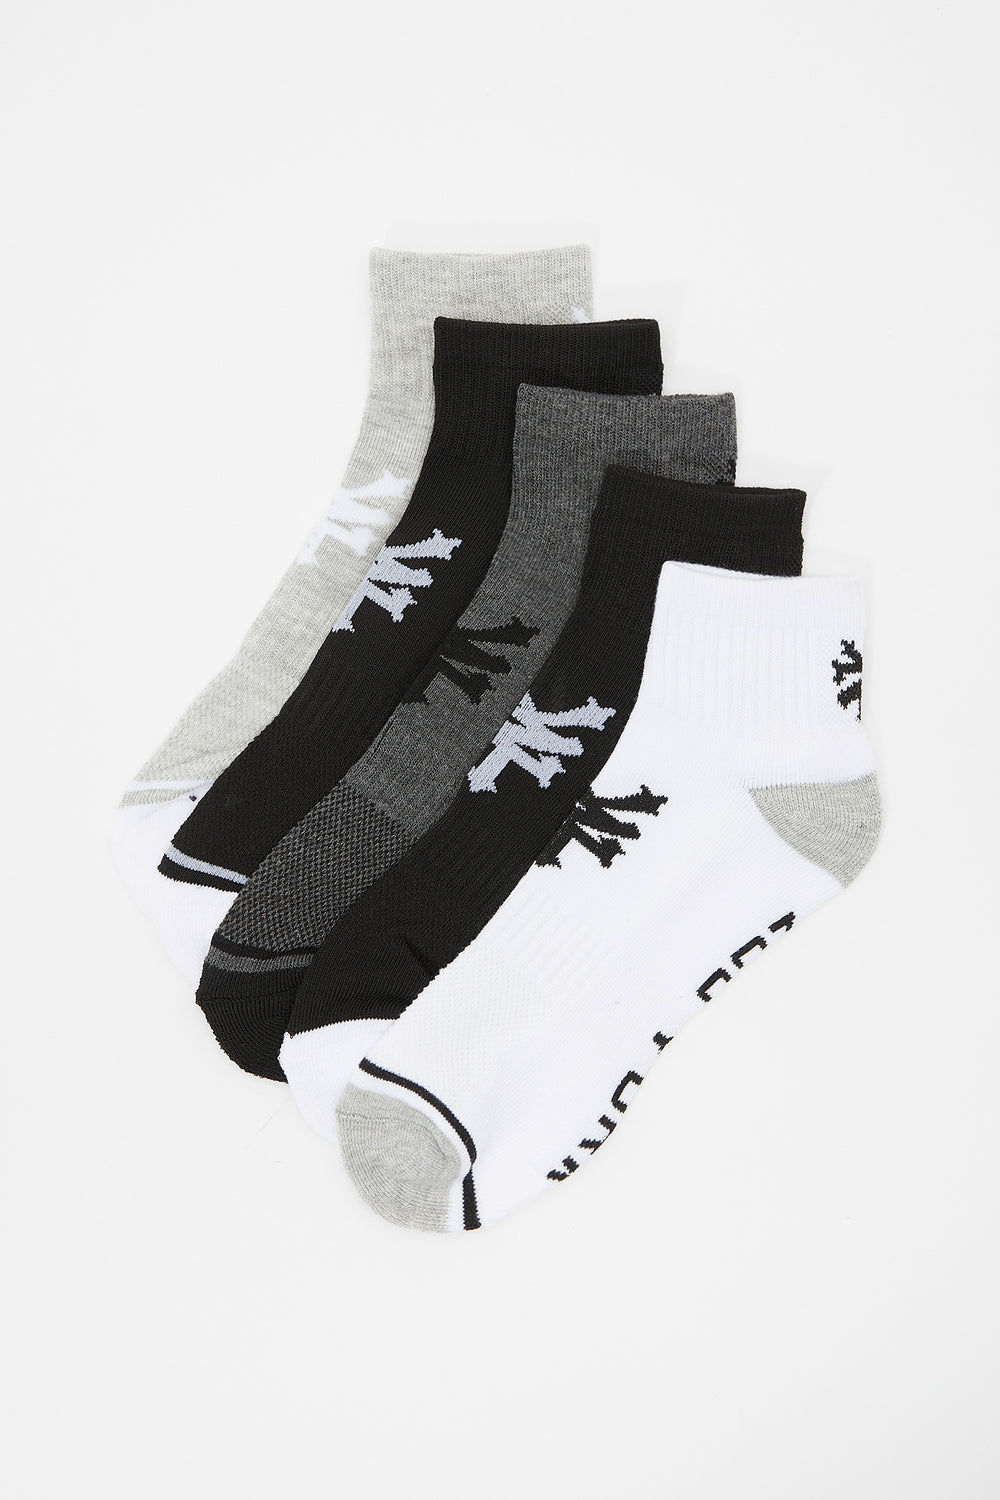 Zoo York Mens Ankle Socks 5-Pack Black with White